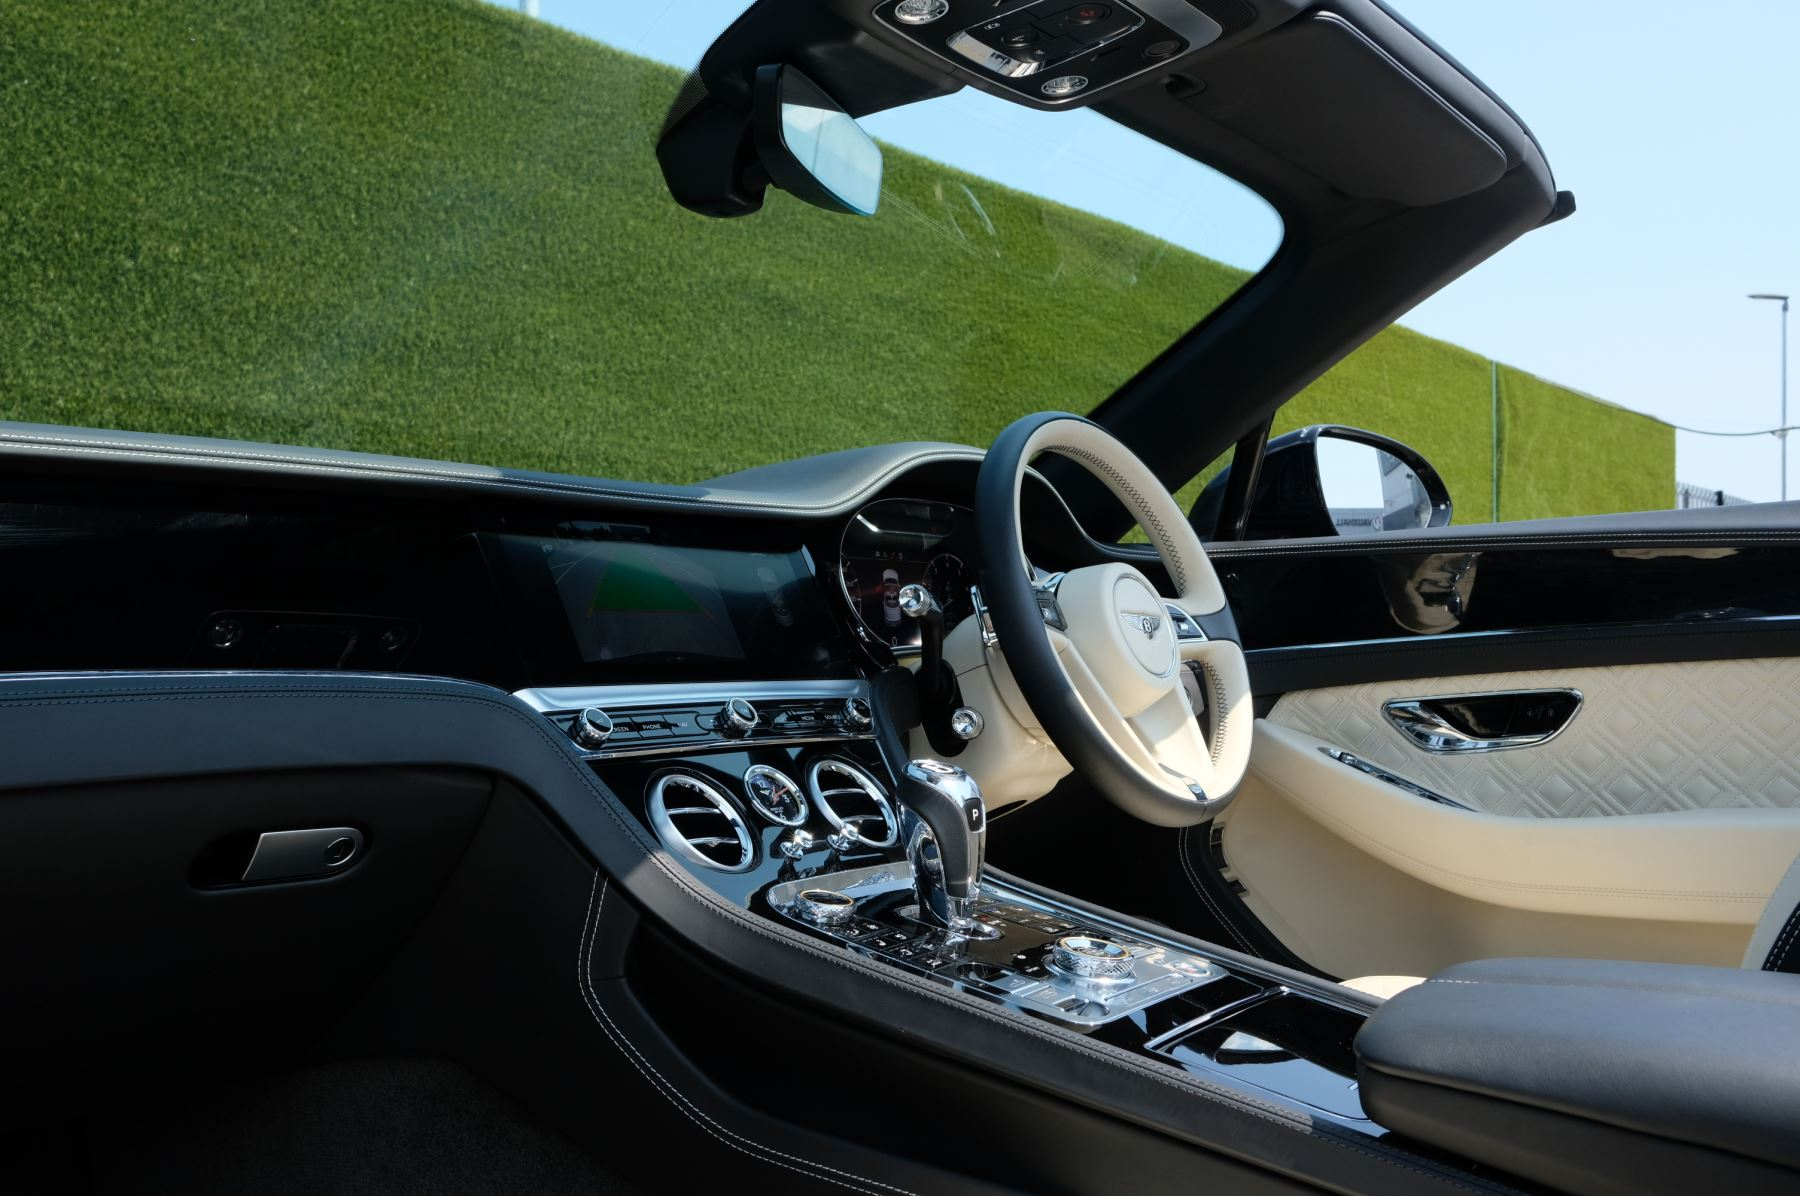 Bentley Continental GTC 6.0 W12 - Mulliner Driving Specification and Centenary Specification image 9